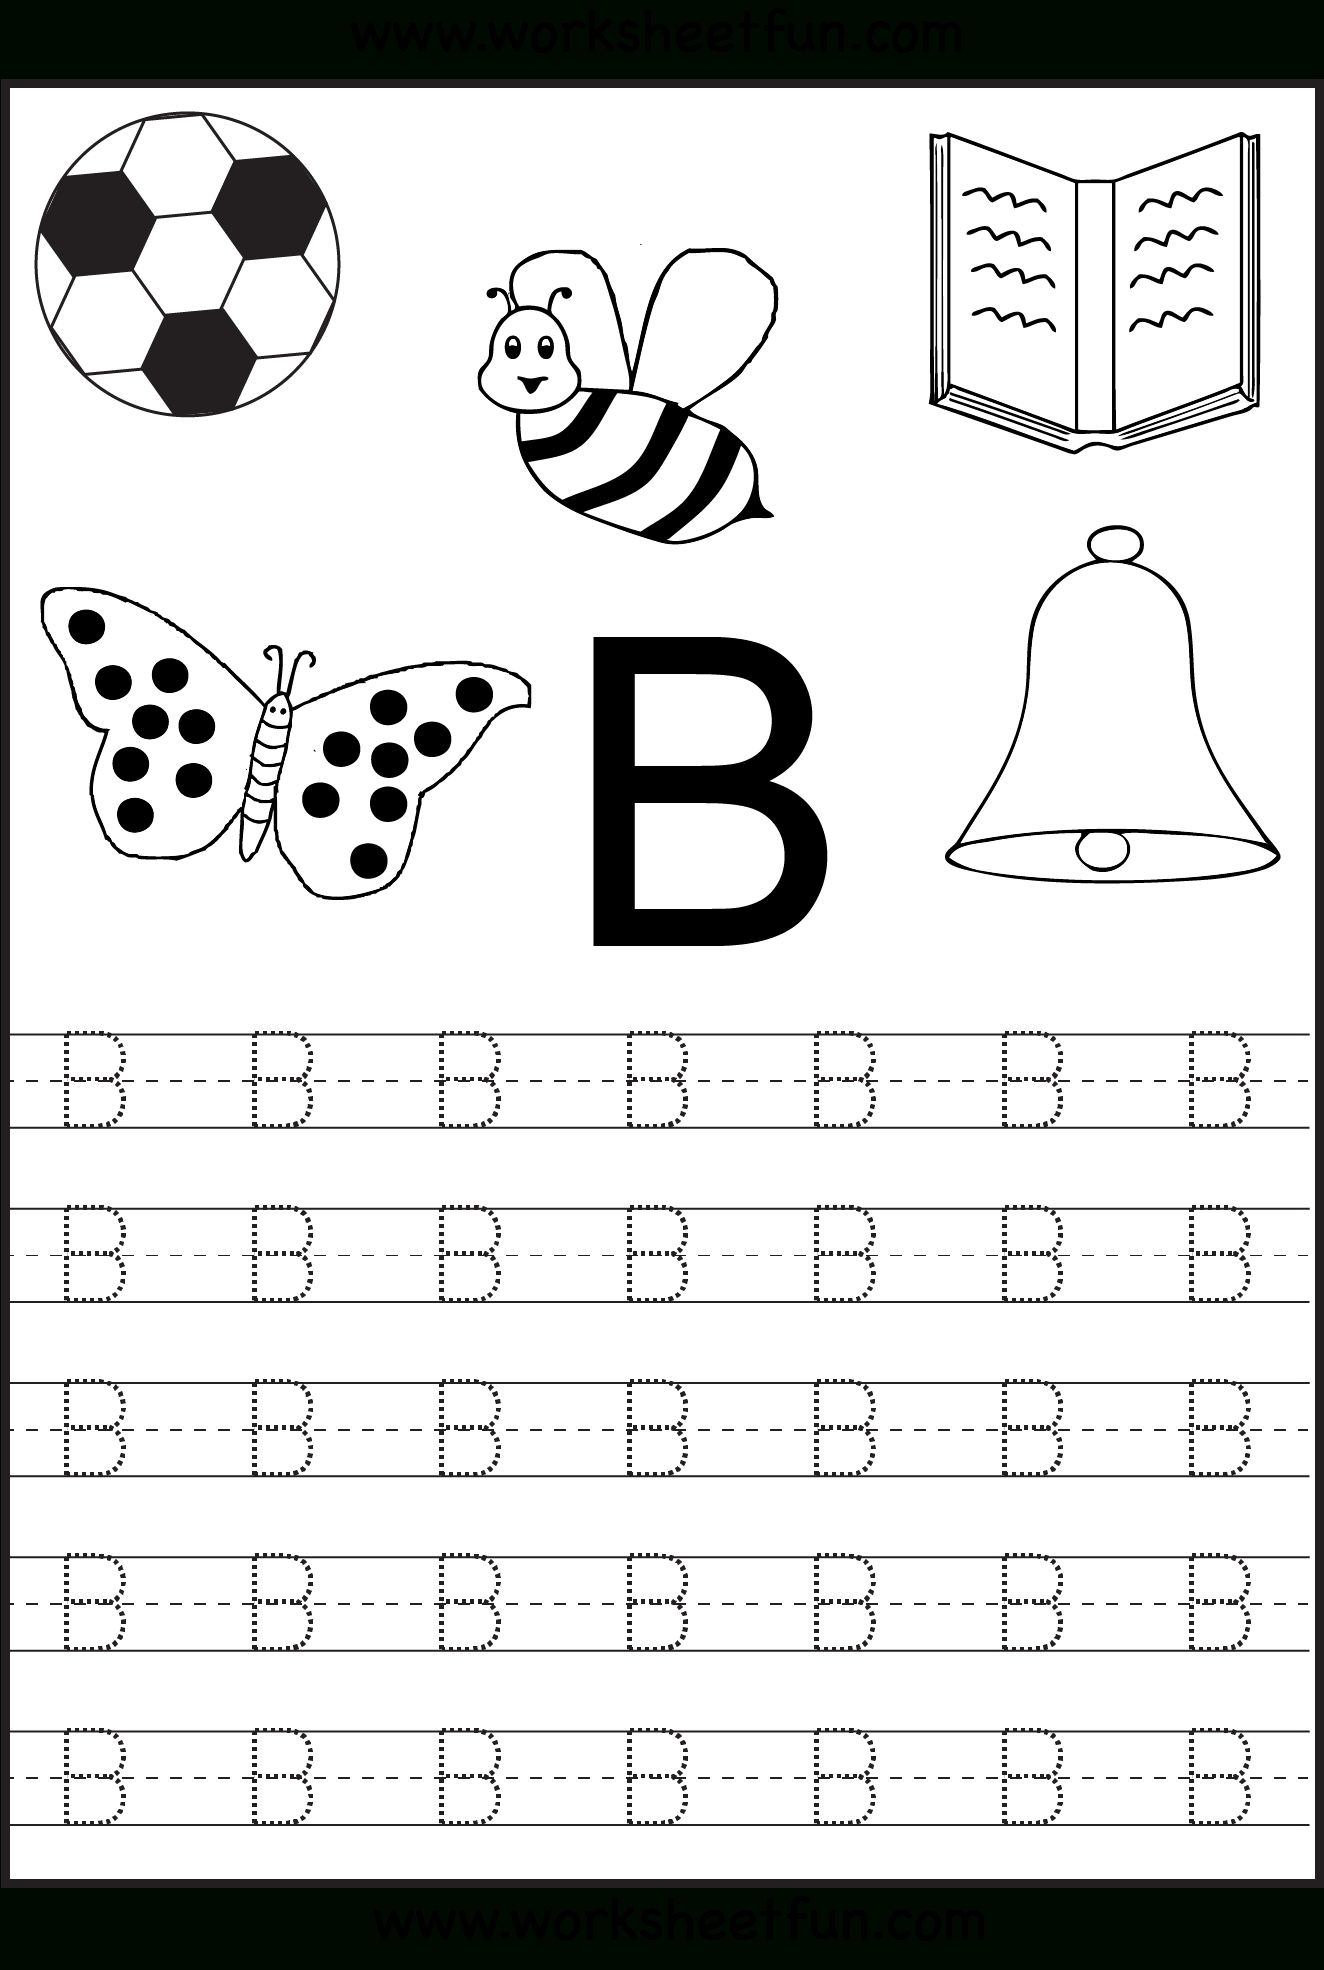 Free Printable Letter Tracing Worksheets For Kindergarten – 26 | Free Printable Tracing Letters And Numbers Worksheets